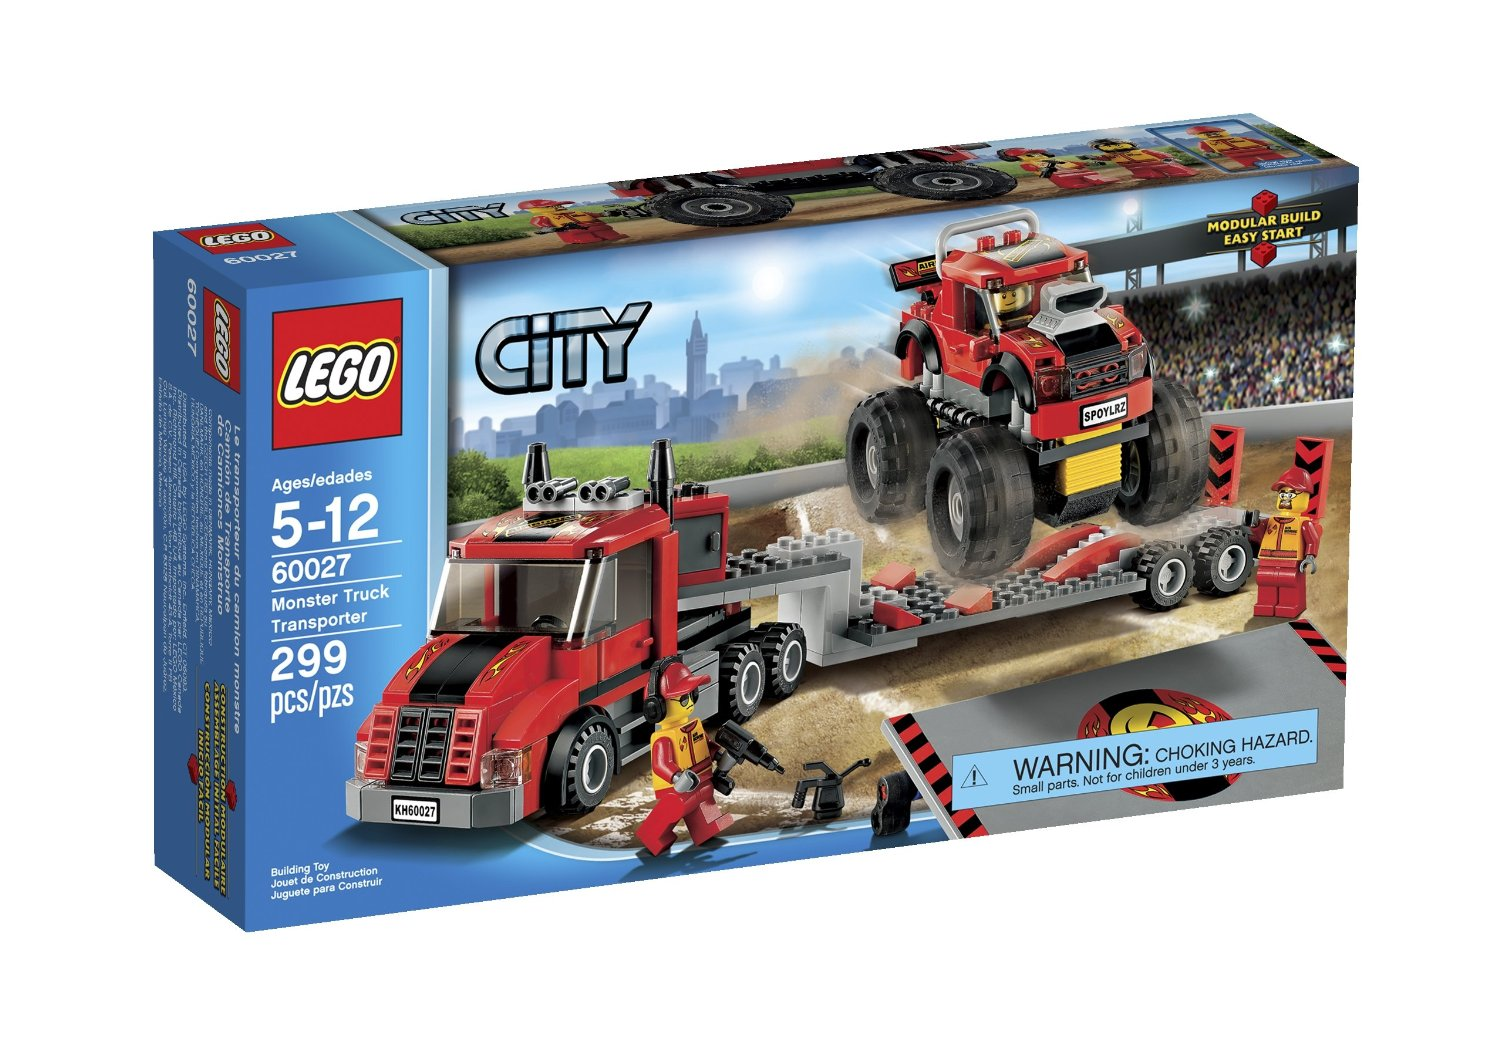 Lego City 60027 : Monster Truck Transporter